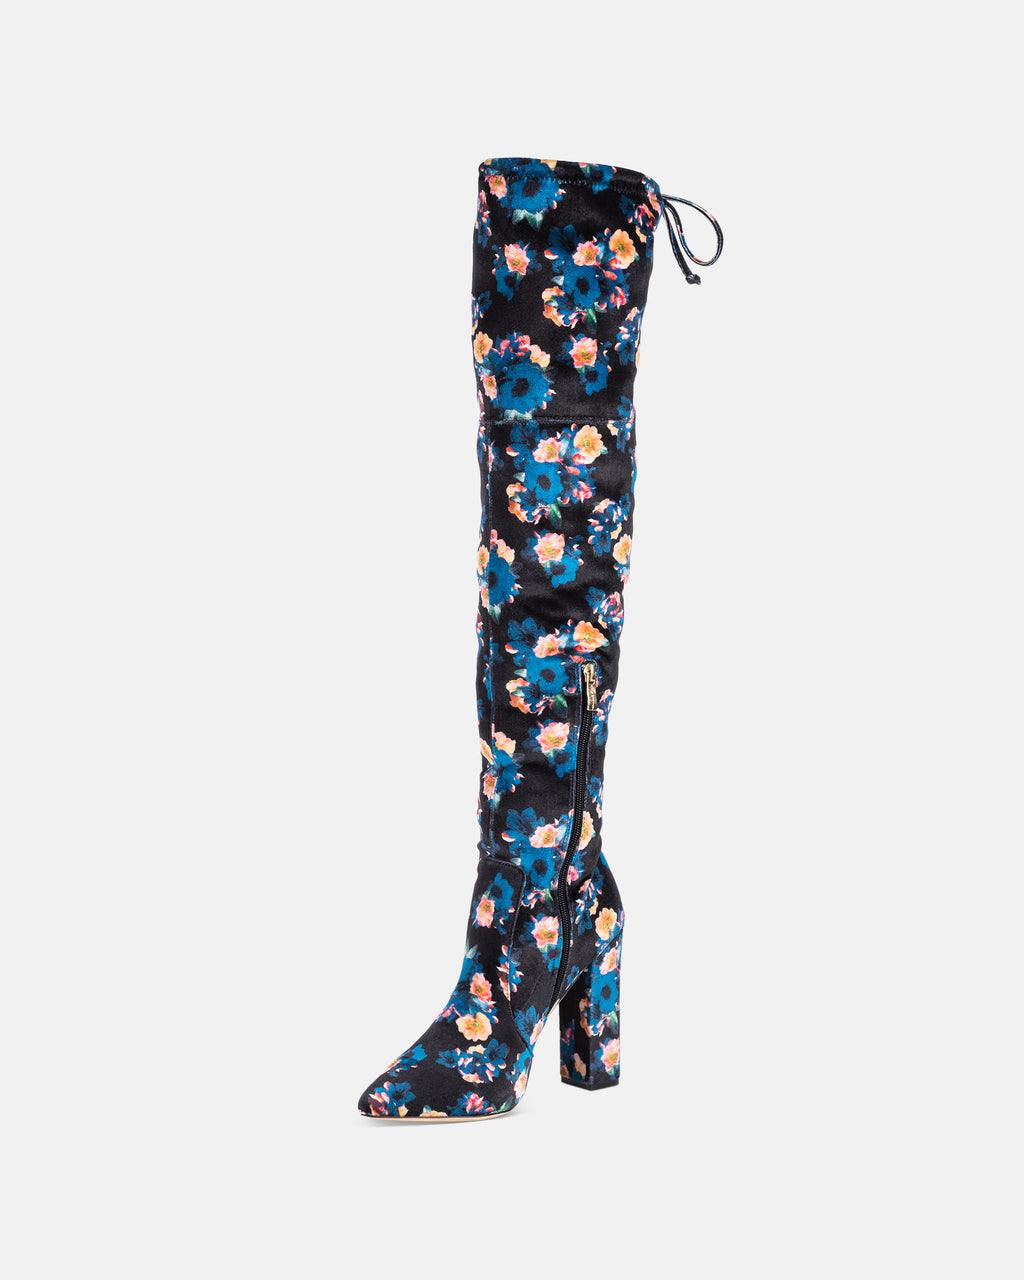 ROZLYN1 - ROZILYN VELVET POPPY PRINT OVER THE KNEE BOOT - shoes - shoes - Straight off our Fall 2018 runway, this thigh high boot is the perfect pop of color for a simple cool weather look. With a block heel and an pointed toe, these boots are made with a poppy printed velvet and side drawstring closure.